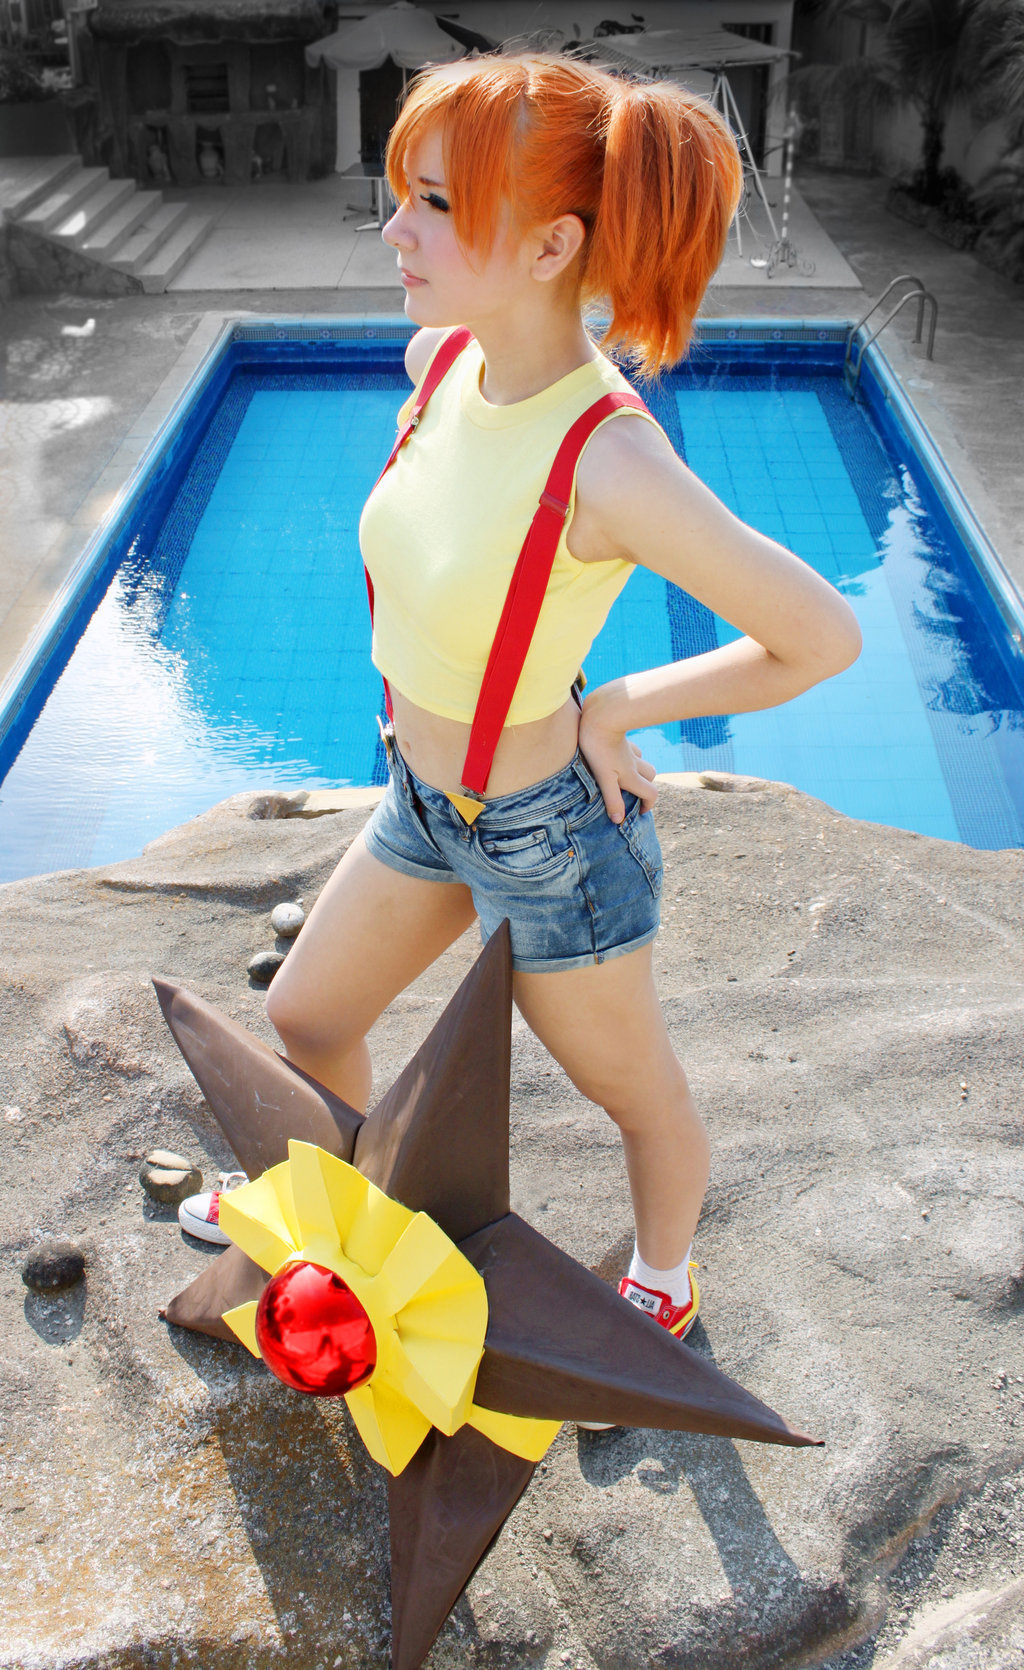 """come on Staryu, let's go kick some ass"" Misty Cosplay Pokemon - Gym Leader by ~SailorMappy"